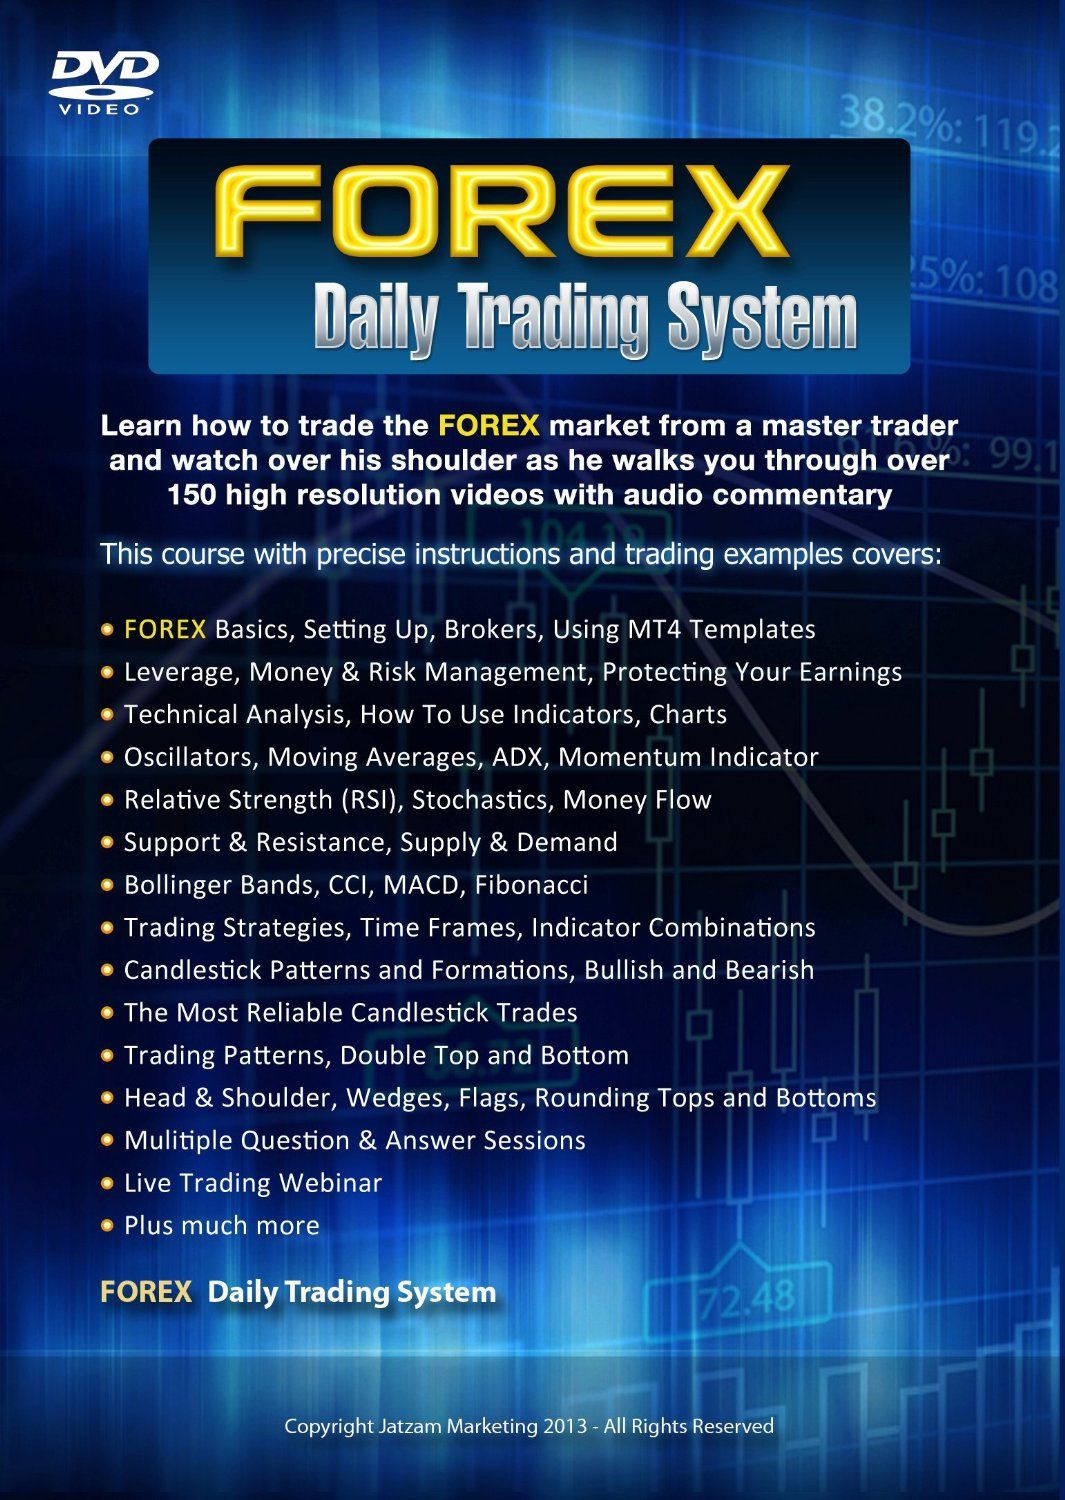 Complete forex trading video course